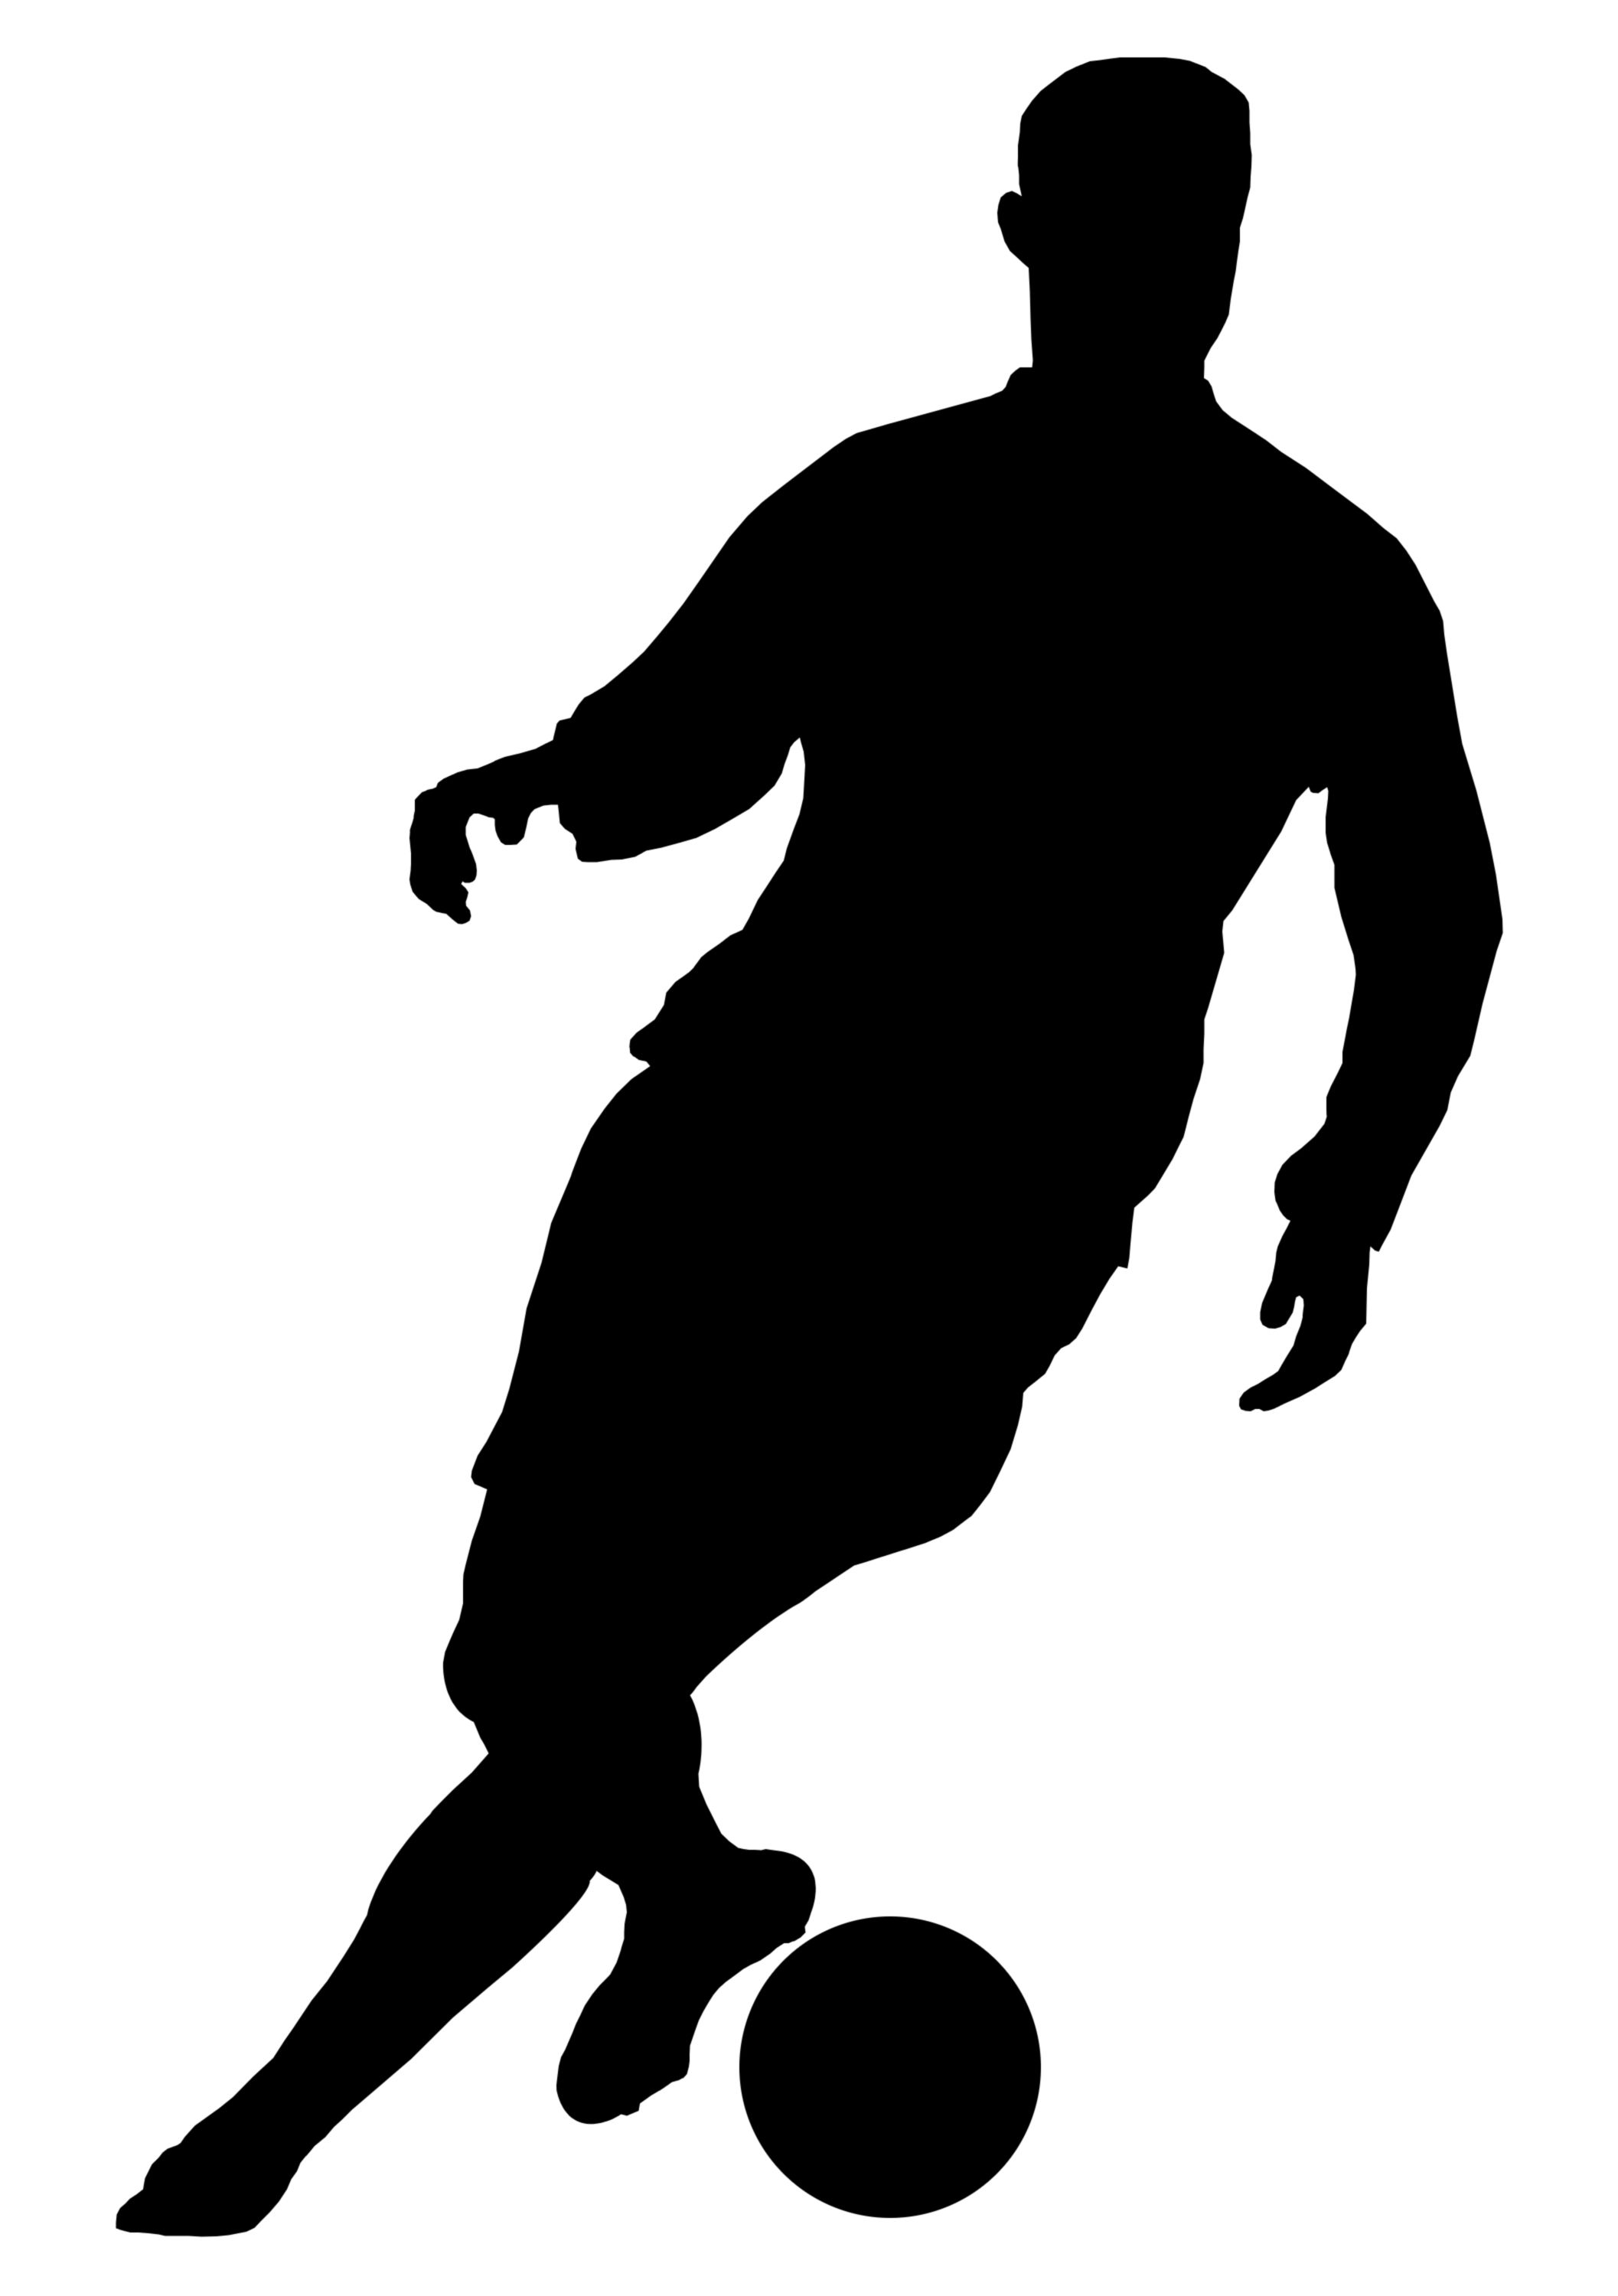 Soccer Football Players Silhouettes Football Players